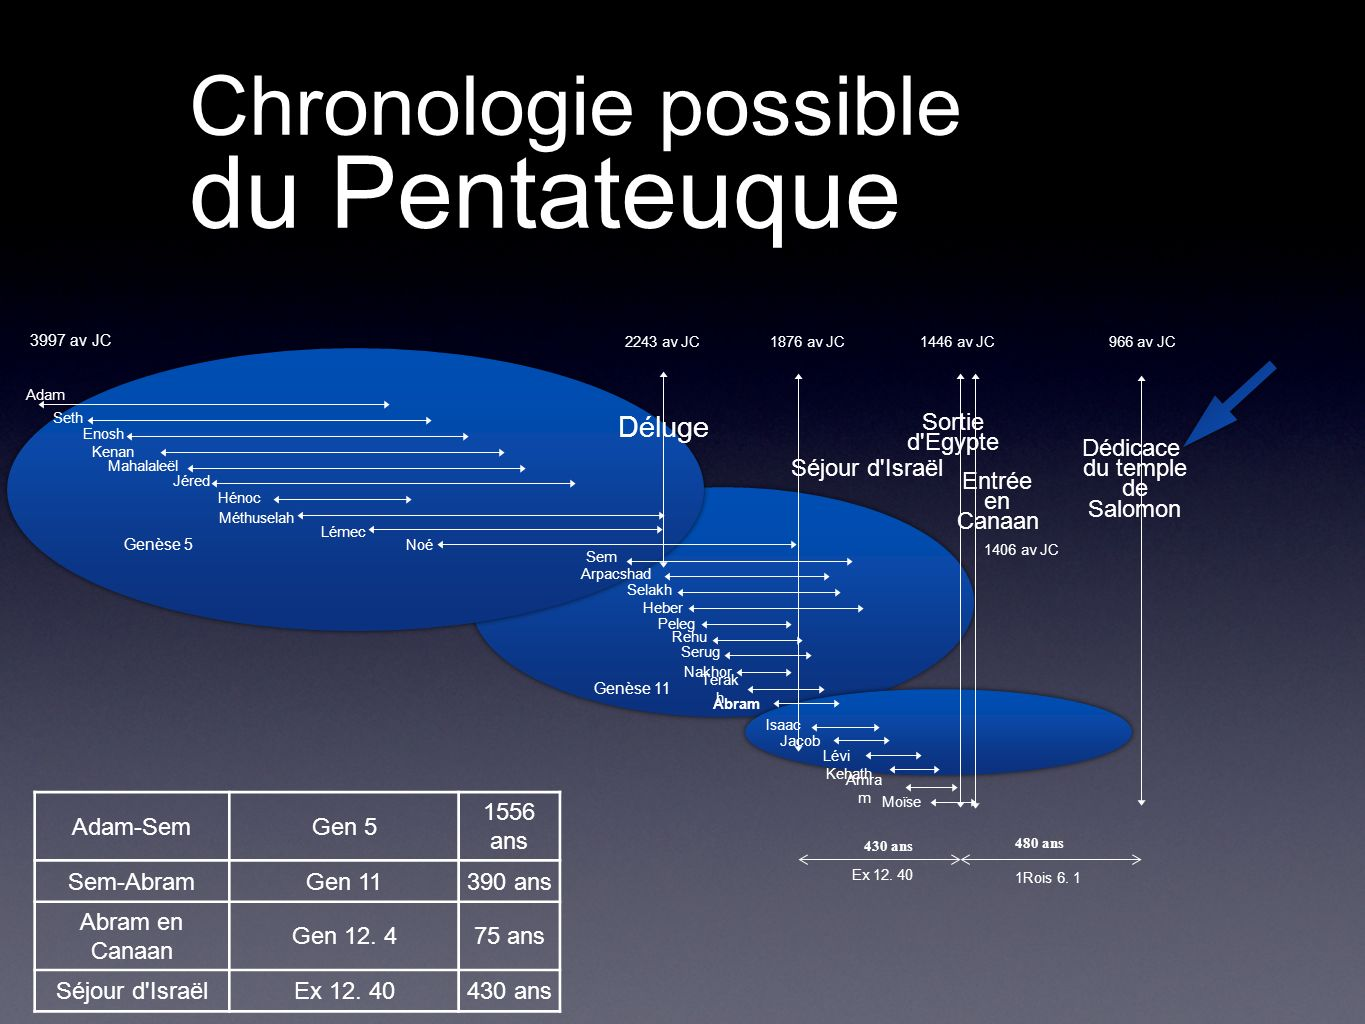 Chronologie possible du Pentateuque